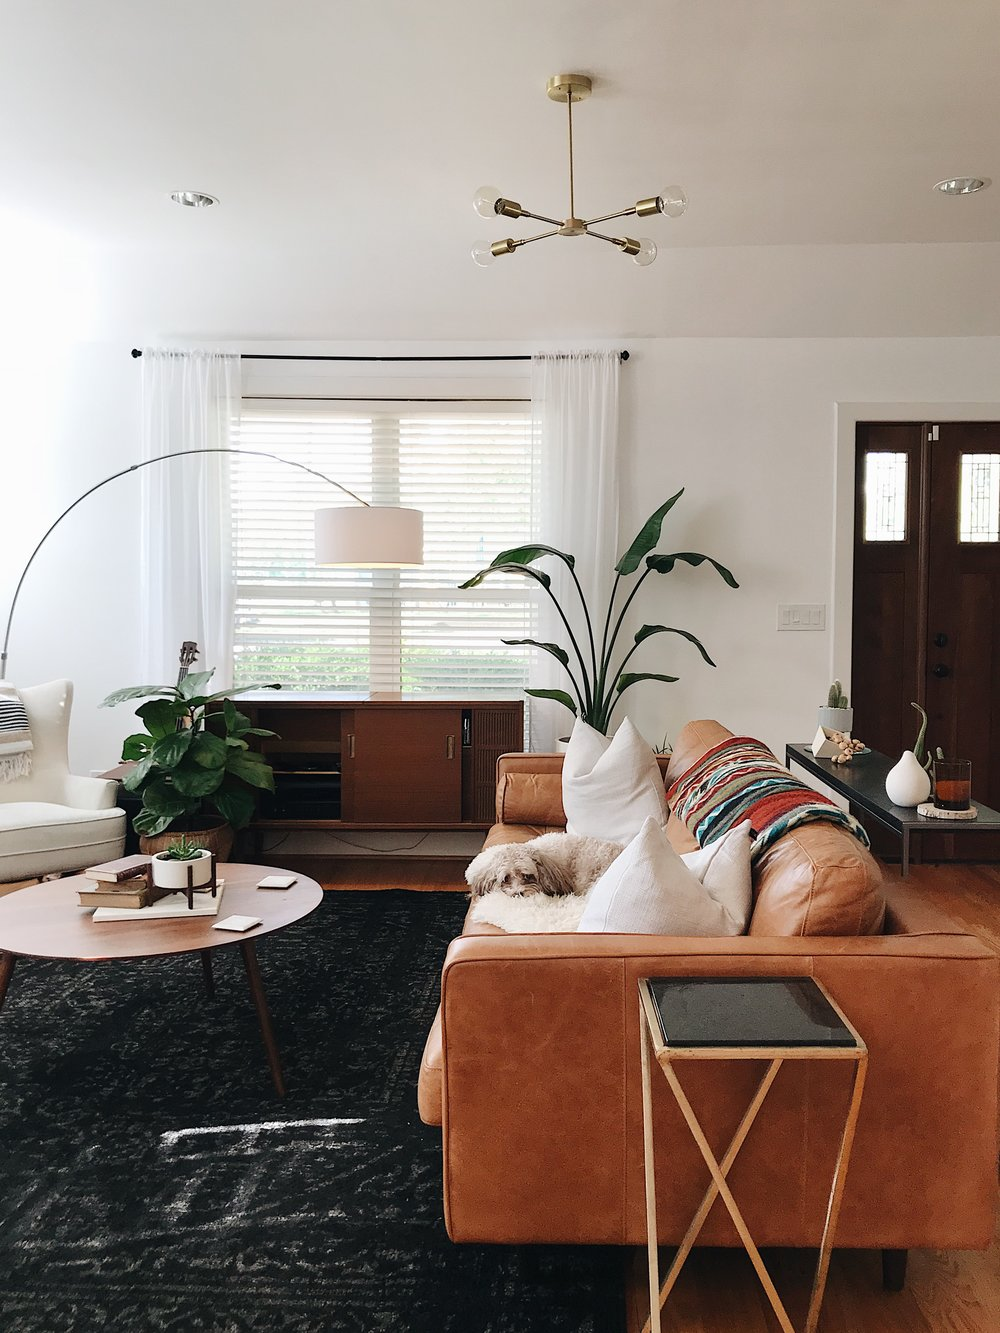 Odyssey Chandelier from Schoolhouse , Sven Sofa and coffee table by  Article , Rug from  RugsUSA , blanket by  Ecuadane , and planters by  Modernica .